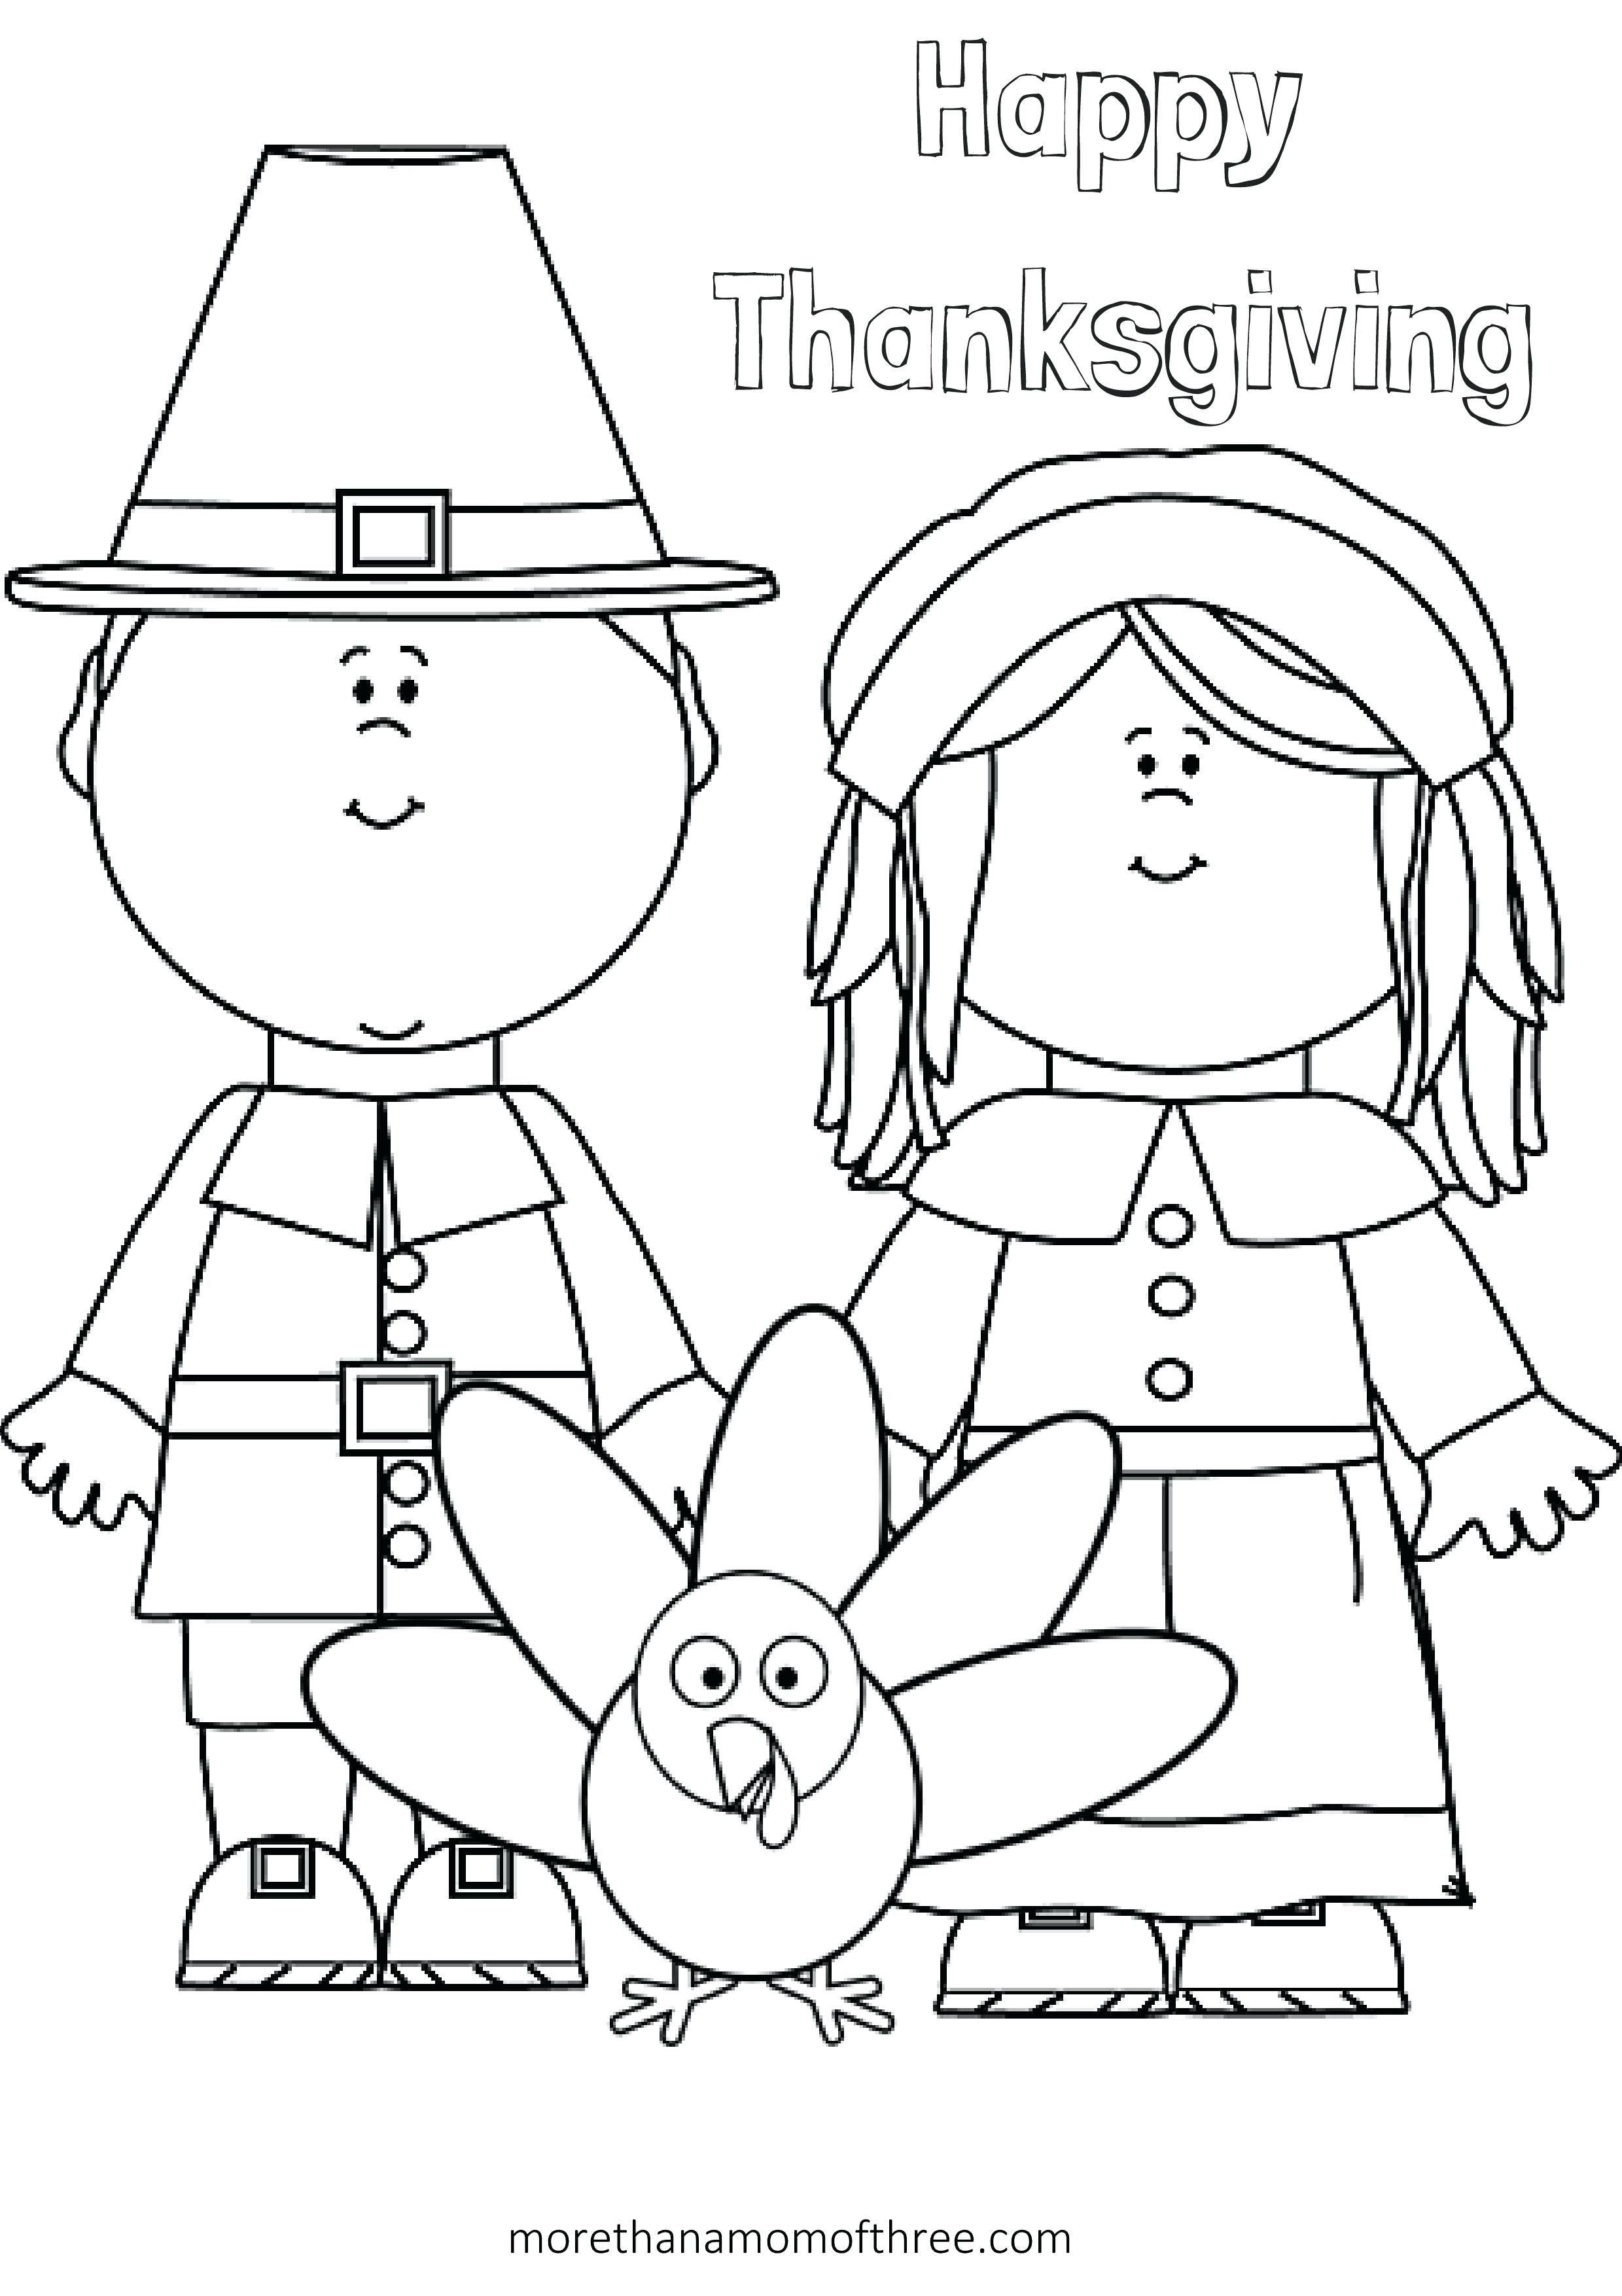 Oriental Trading Coloring Pages Beautiful Printable Missionary Colori In 2020 Thanksgiving Coloring Sheets Free Thanksgiving Coloring Pages Thanksgiving Coloring Pages